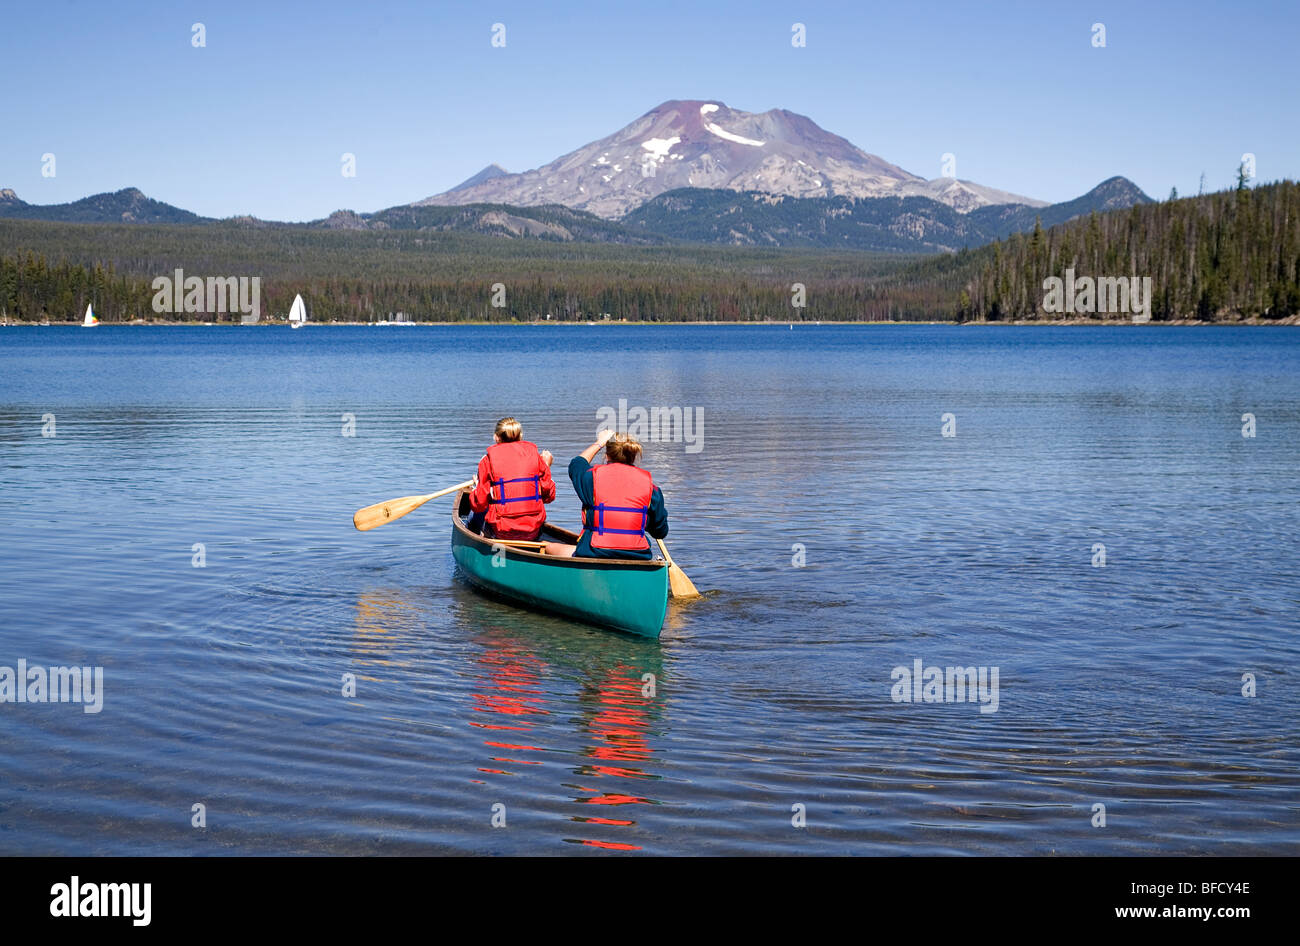 Two teenaged girls in a canoe on Elk Lake in the Oregon Cascade Mountains along the Cascade Lakes Highway - Stock Image